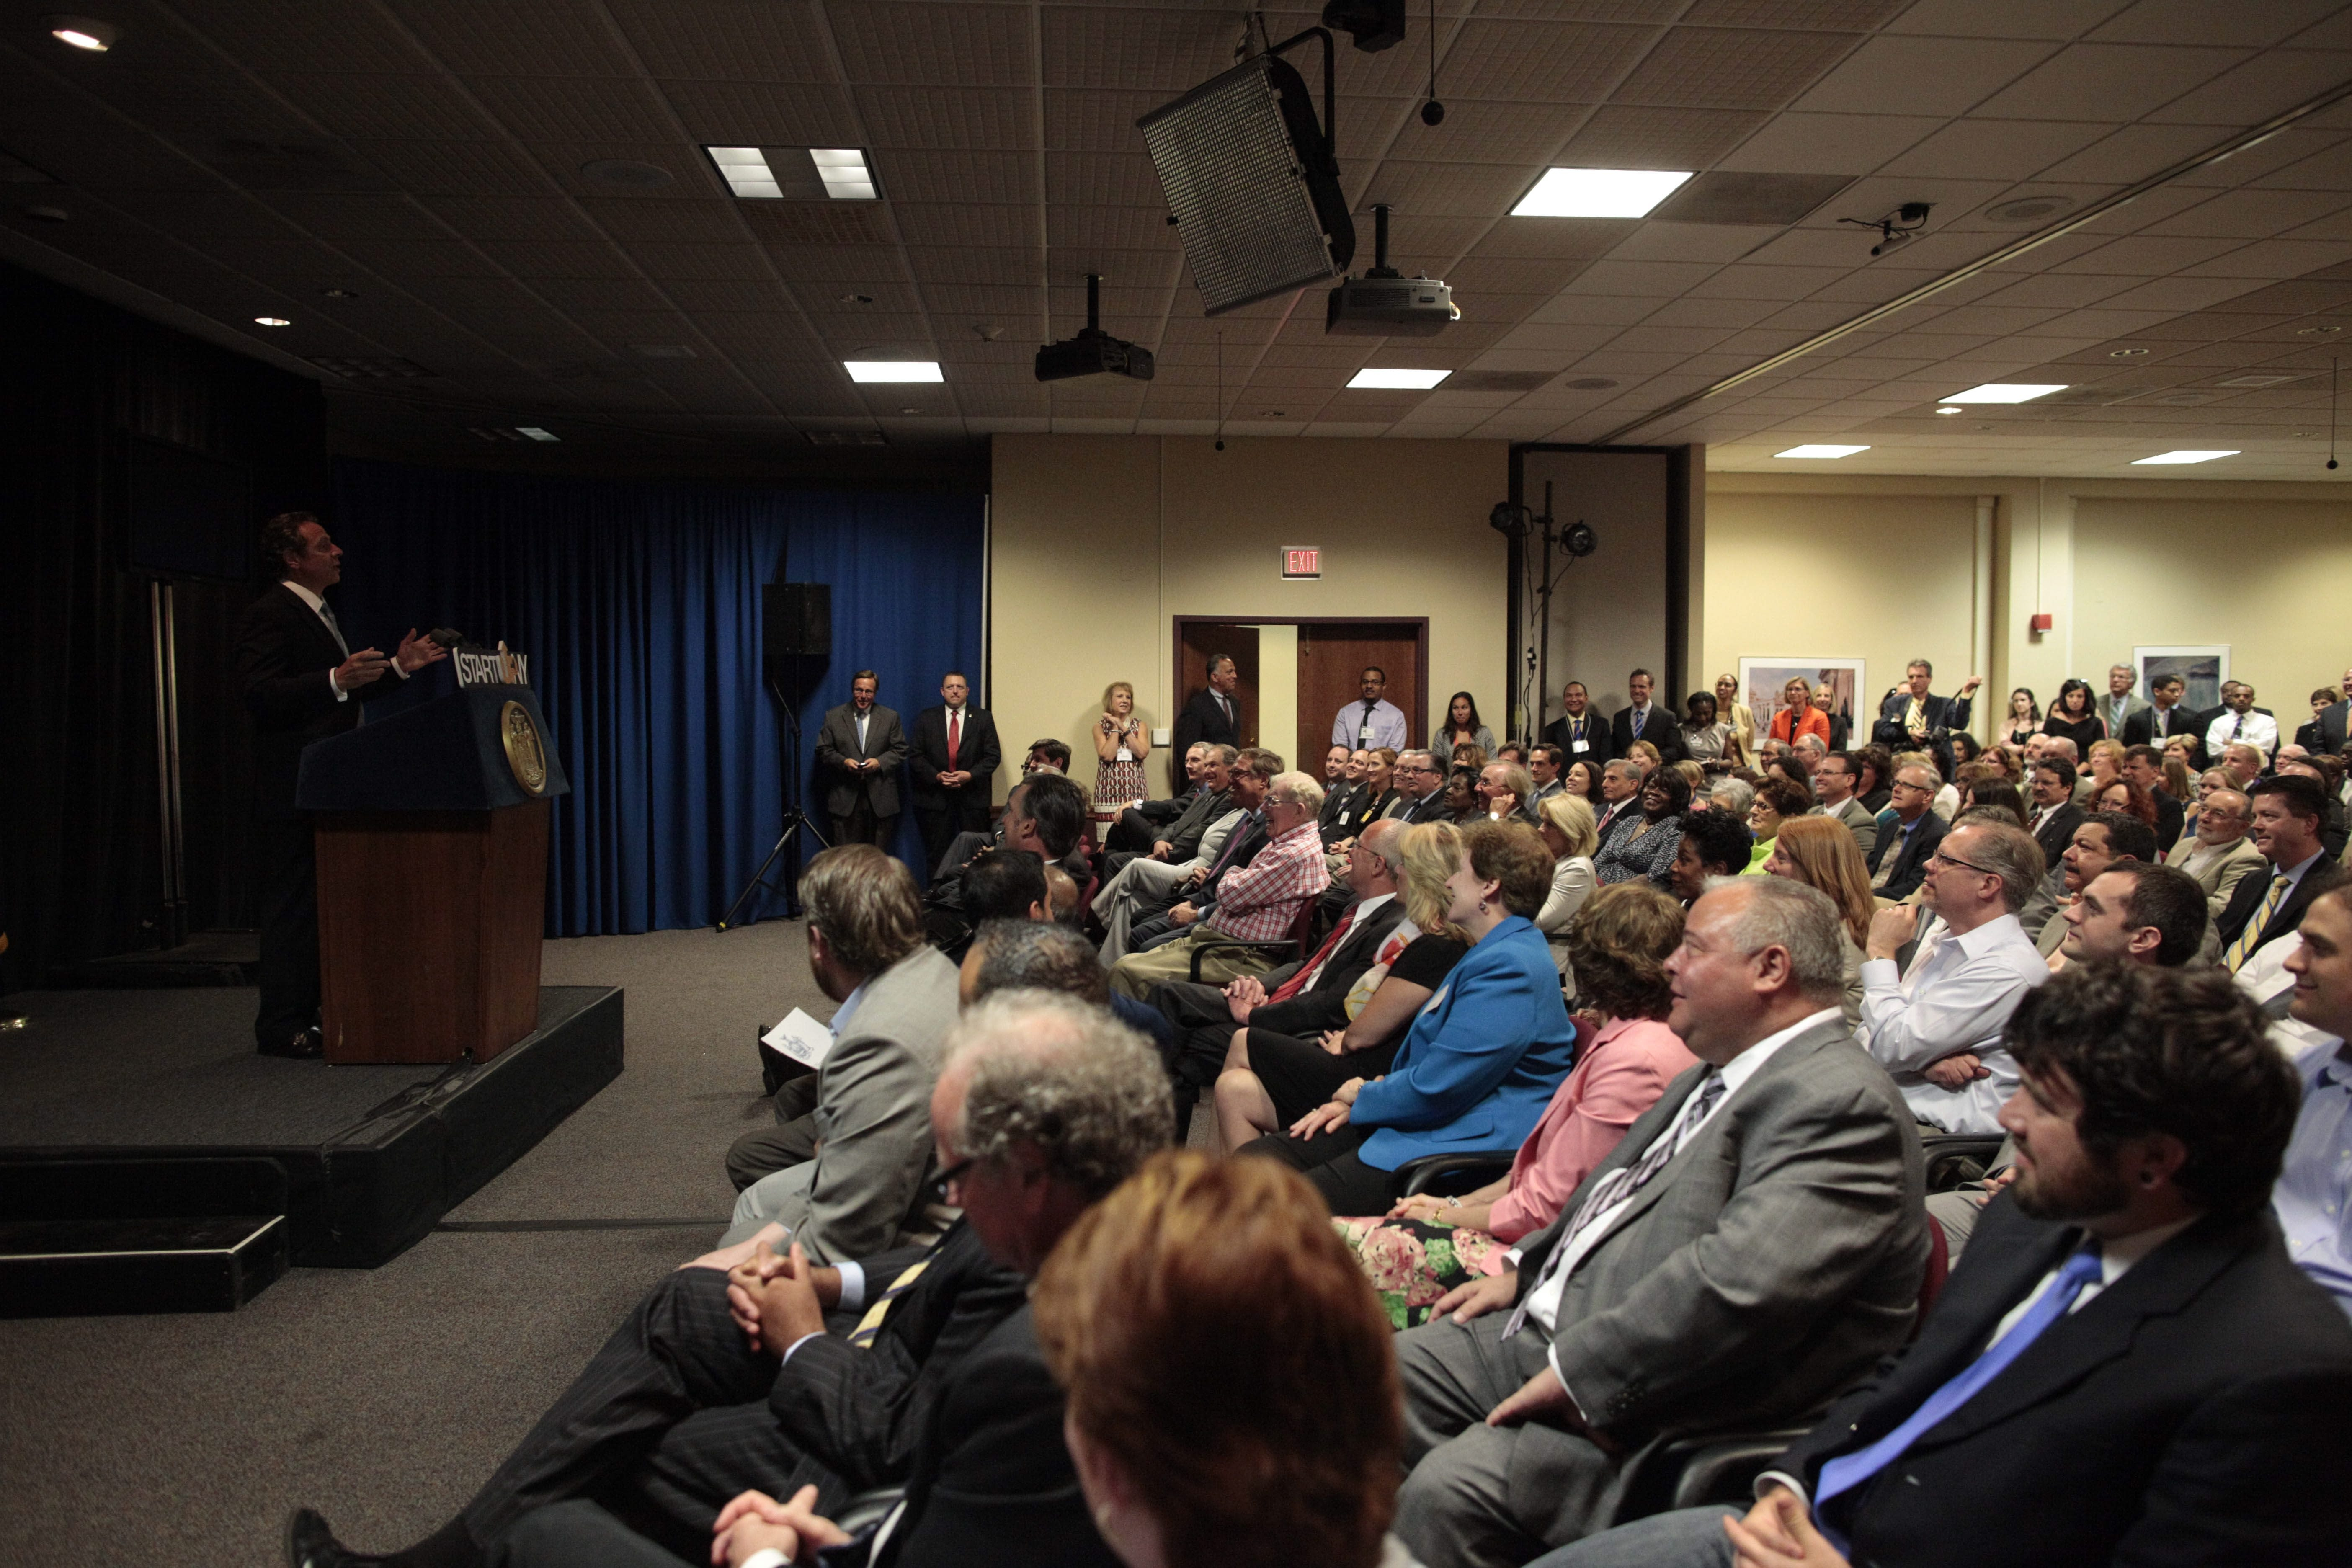 New York Gov. Andrew Cuomo keeps speaking after losing electric power on stage during an event at Roswell Park Cancer Institute, Wednesday, June 4, 2014. (Derek Gee/Buffalo News)